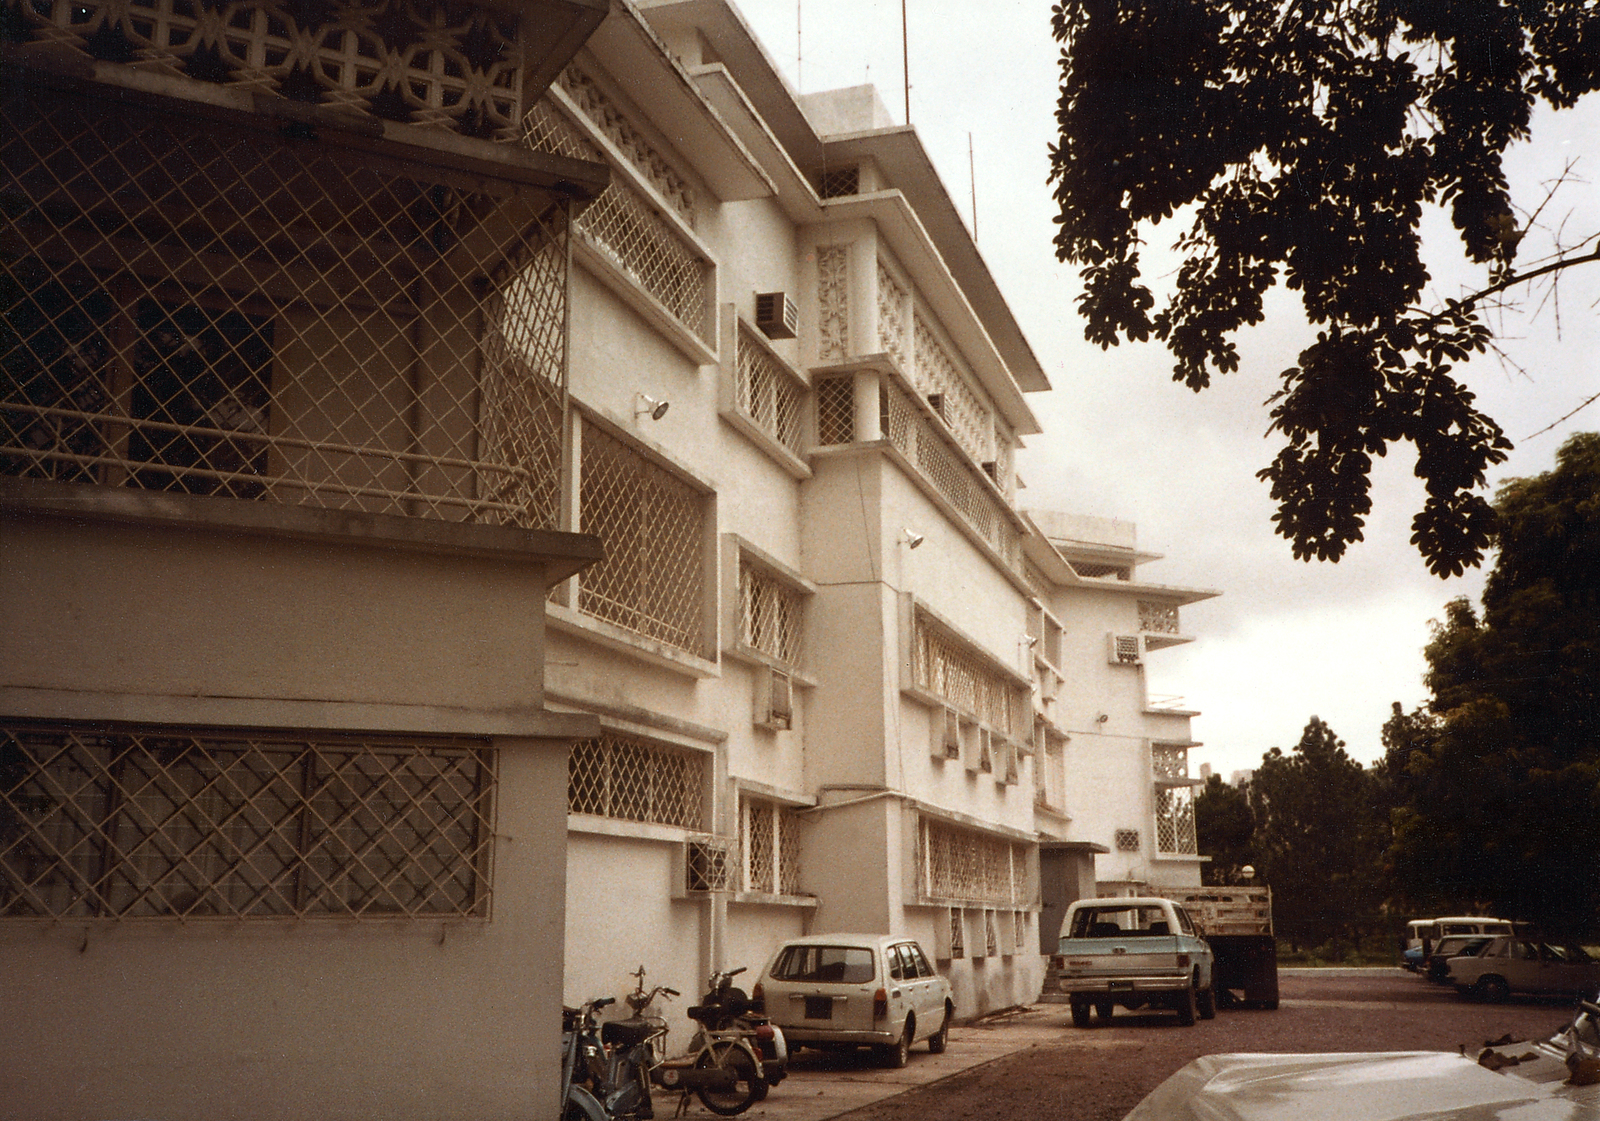 Brazzaville - Consulate Office Building - 1983